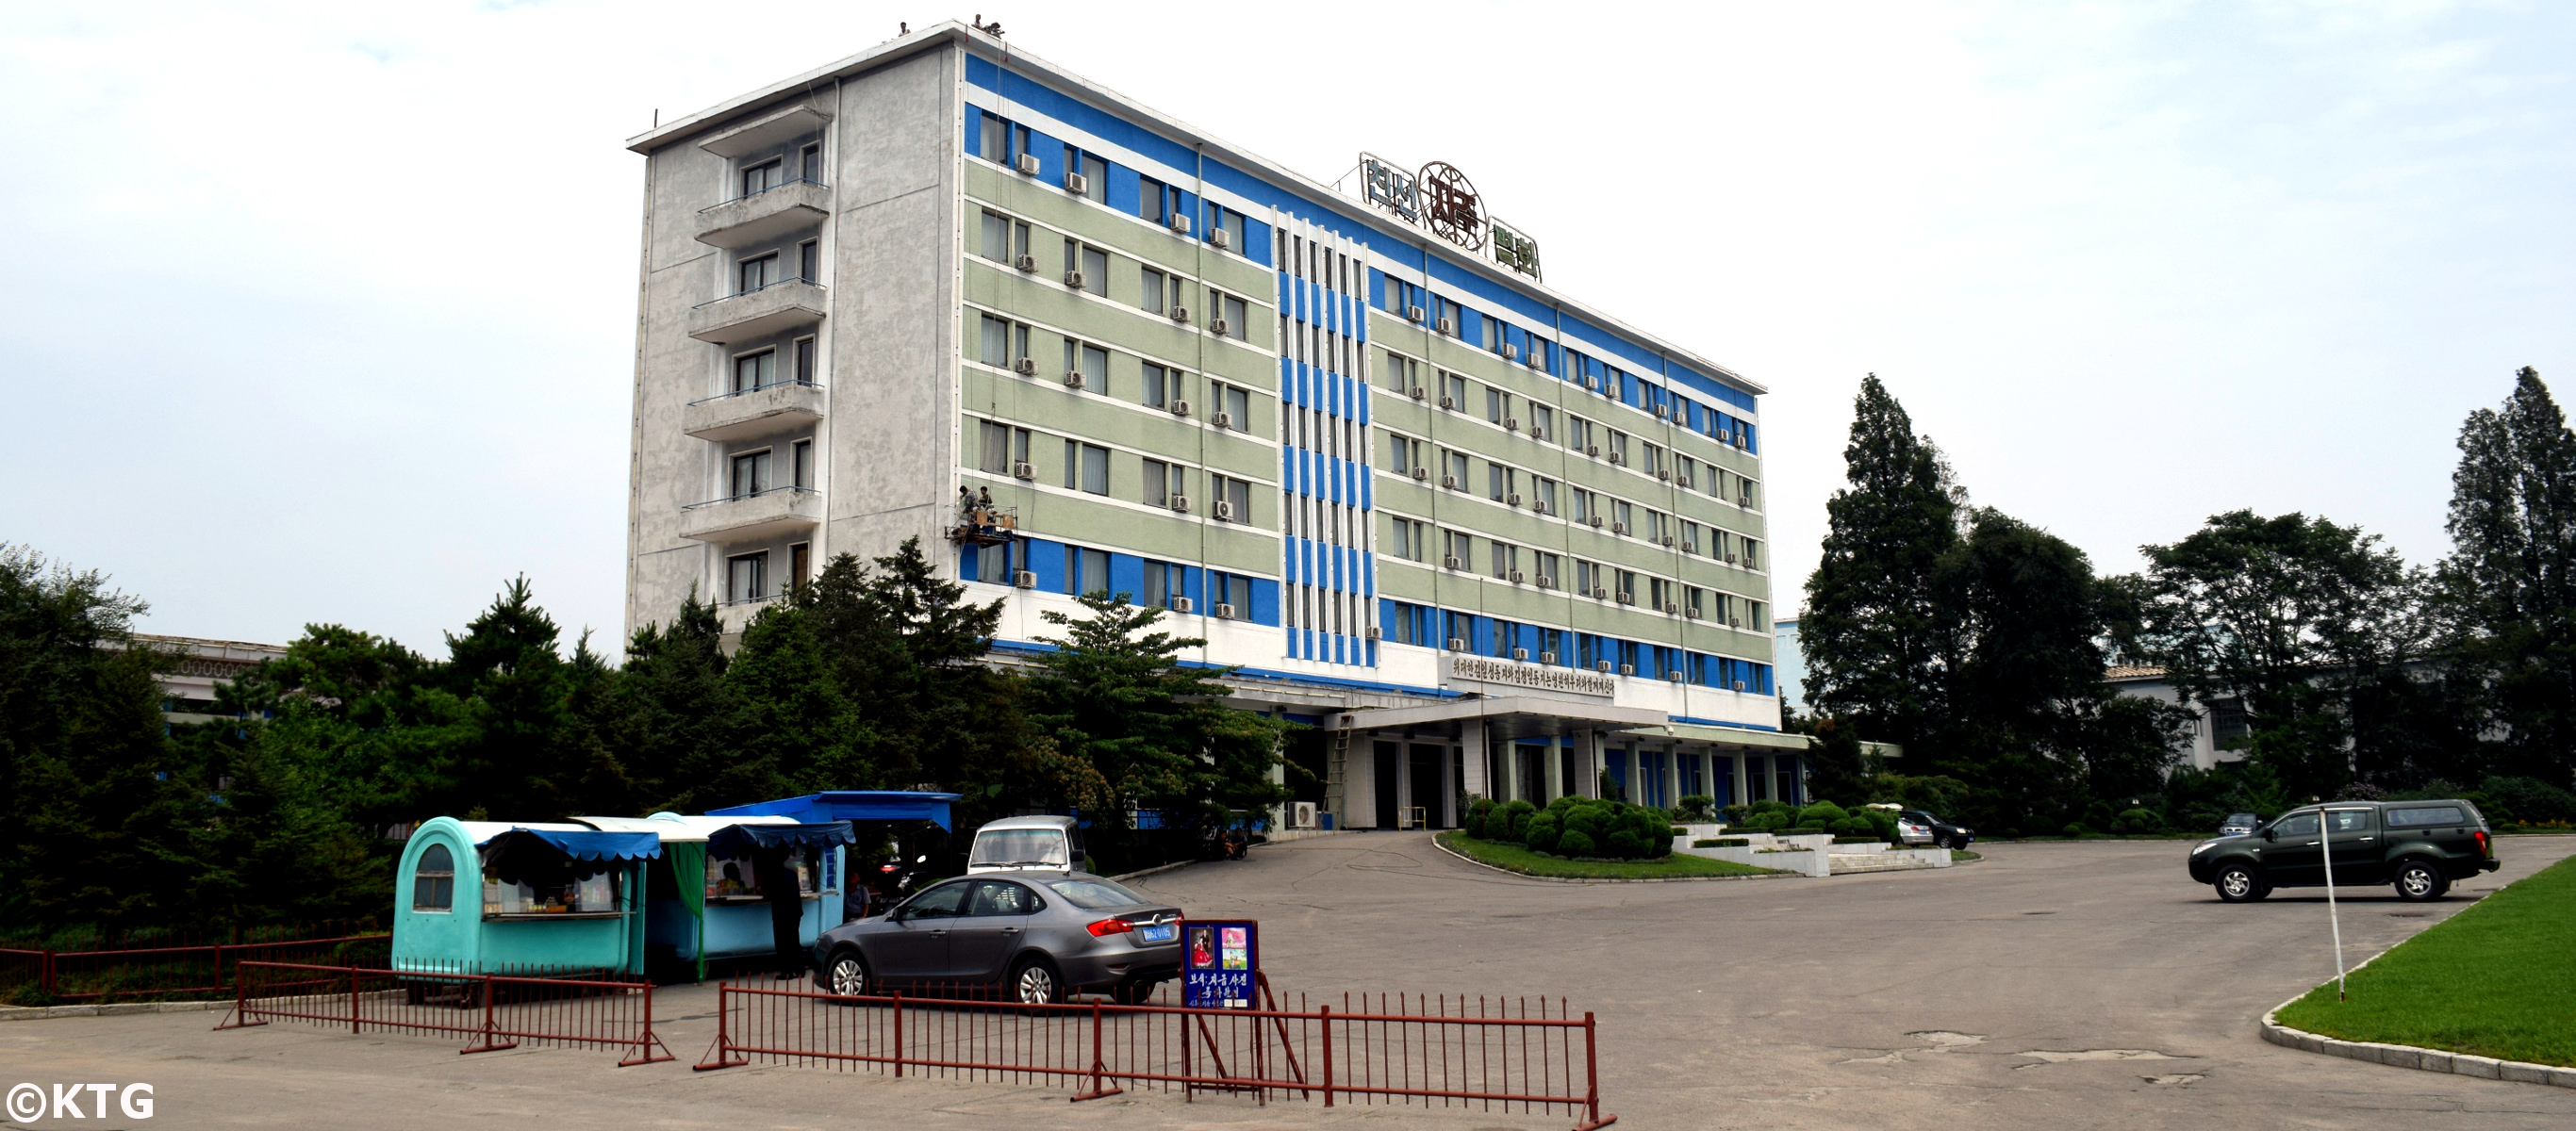 The Sinsunhang Hotel in Hamhung city, provincial capital of South Hamgyong province, North Korea (DPRK). Trip arranged by KTG Tours